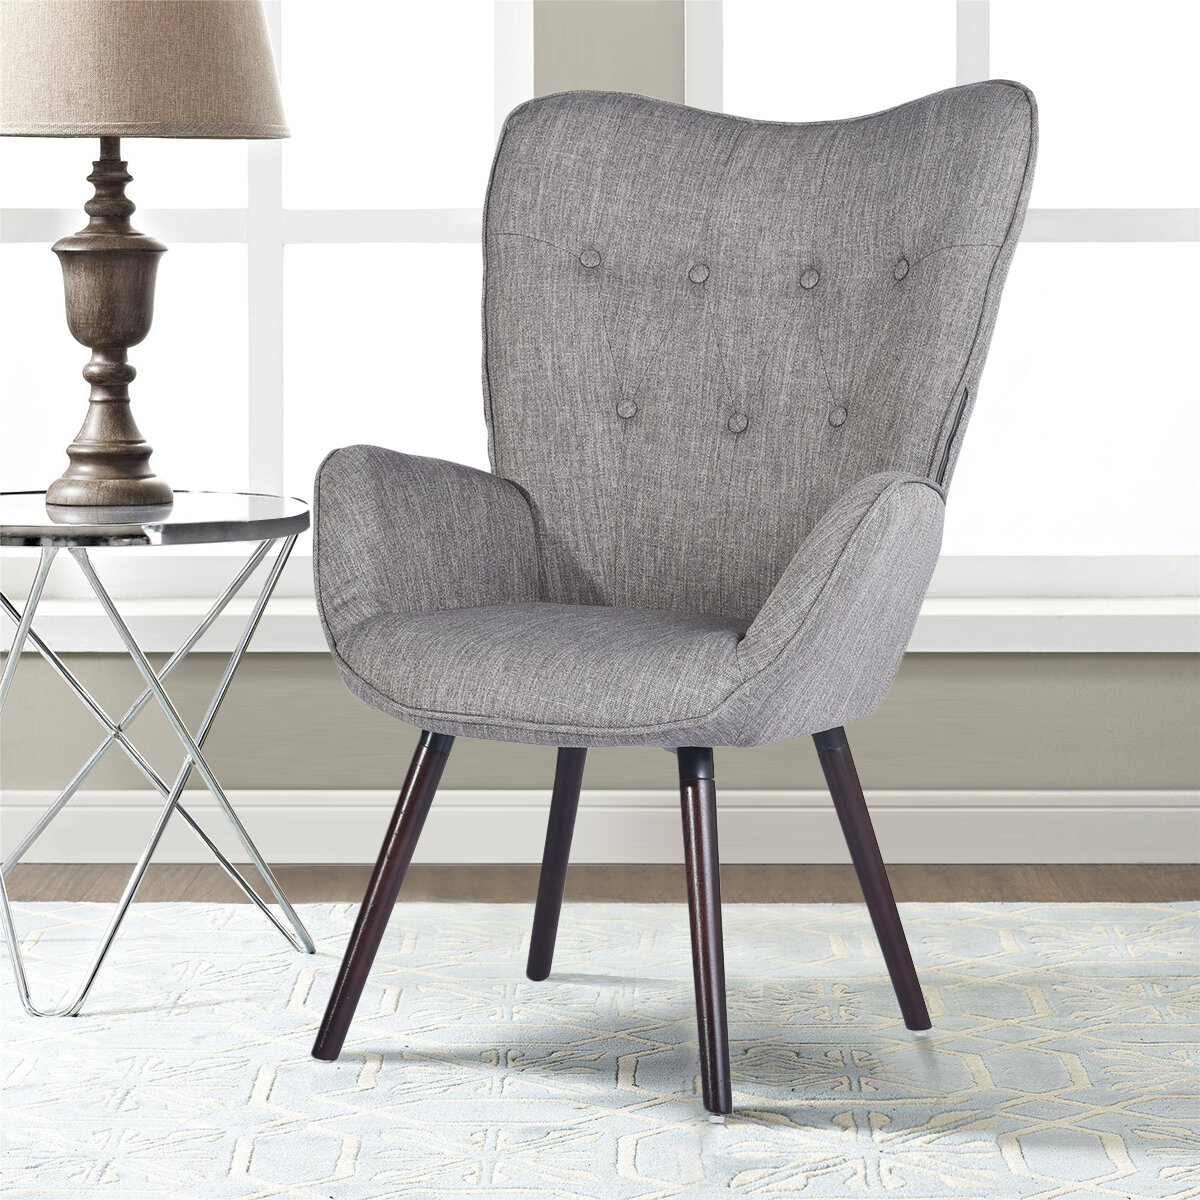 39F Inc Channel Armchair & Reviews | Wayfair Intended For Armory Fabric Armchairs (View 6 of 15)